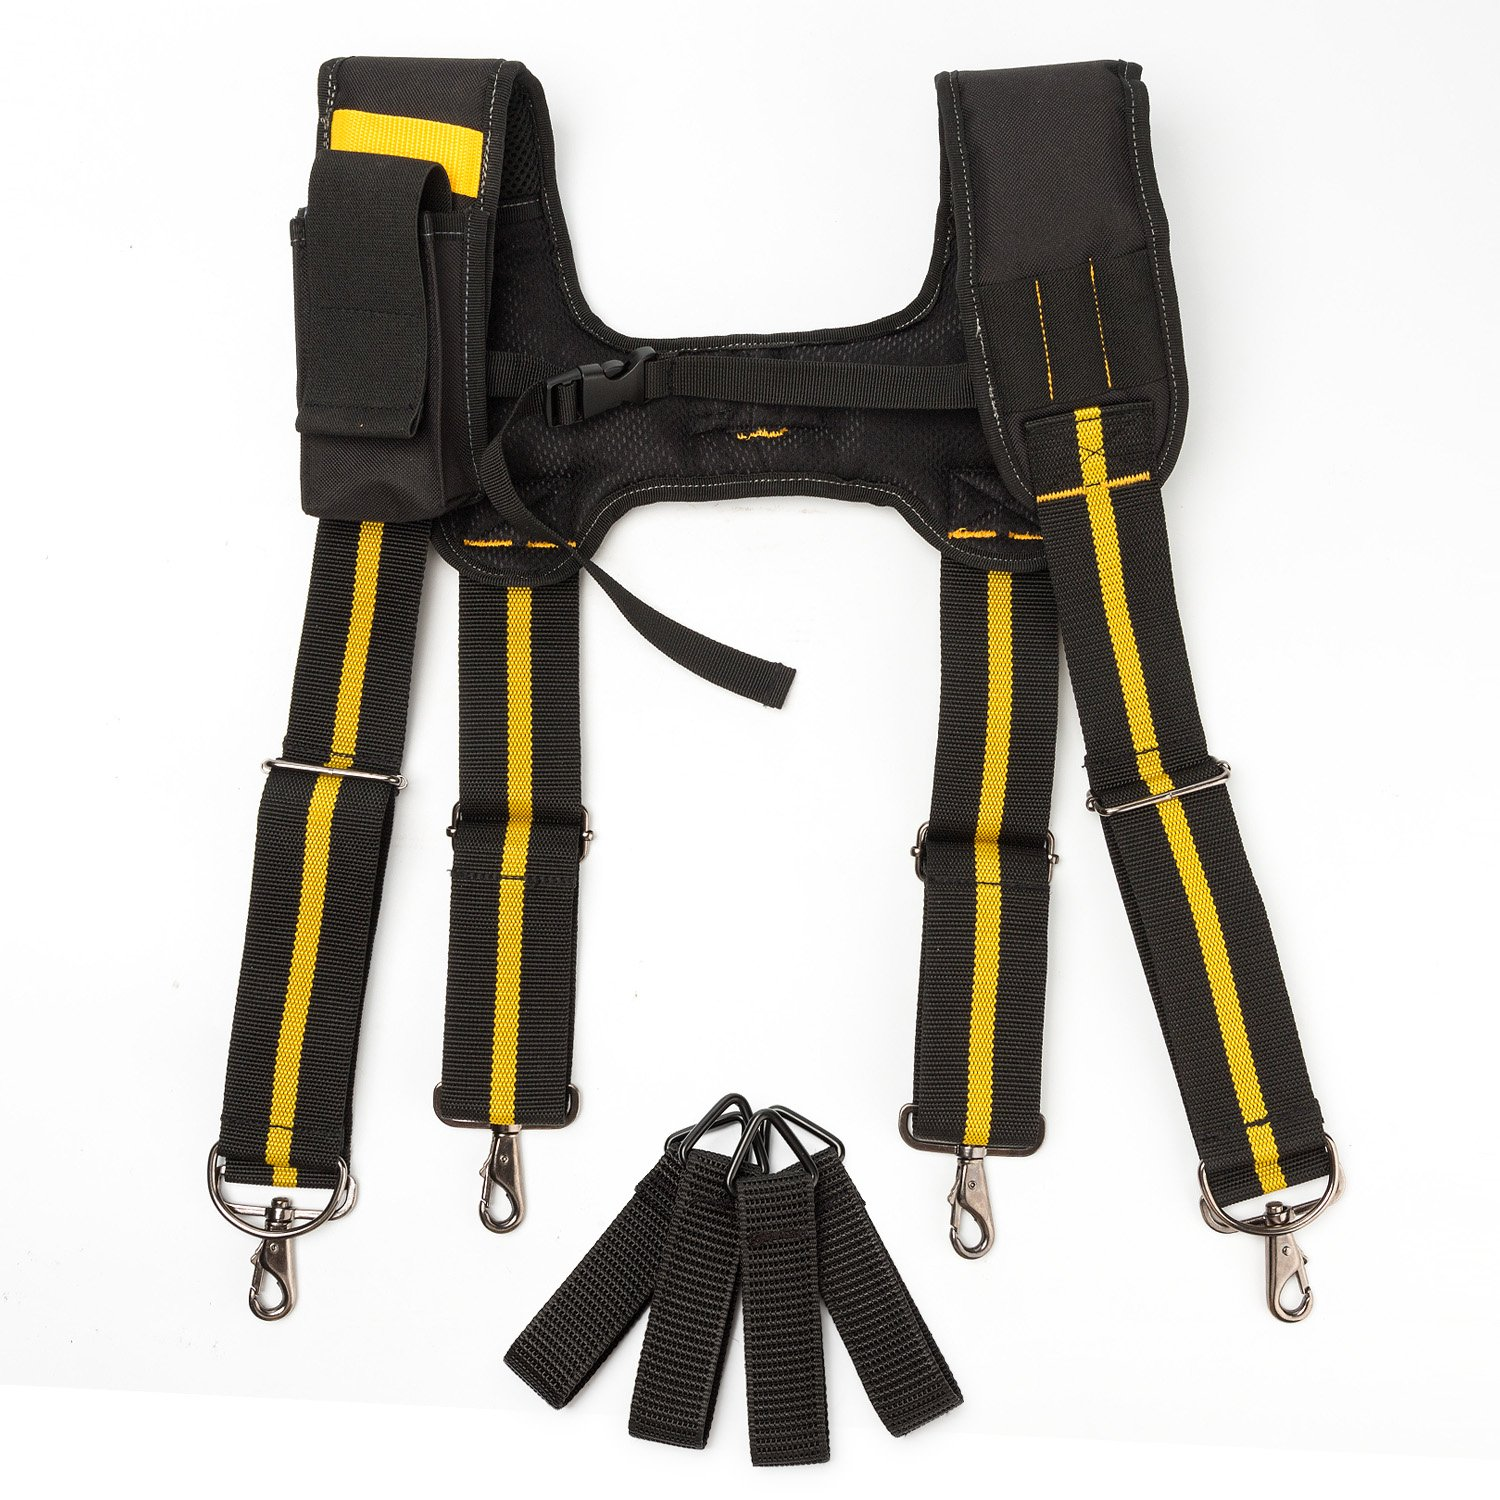 Tool Belt Suspenders|Padded Suspenders with movable phone holder Tape Holder Pencil holder,Flexible Adjustable Straps, suspenders Loop Attachments for carpenter electrician work Suspension Rig by Melo Tough (Image #1)